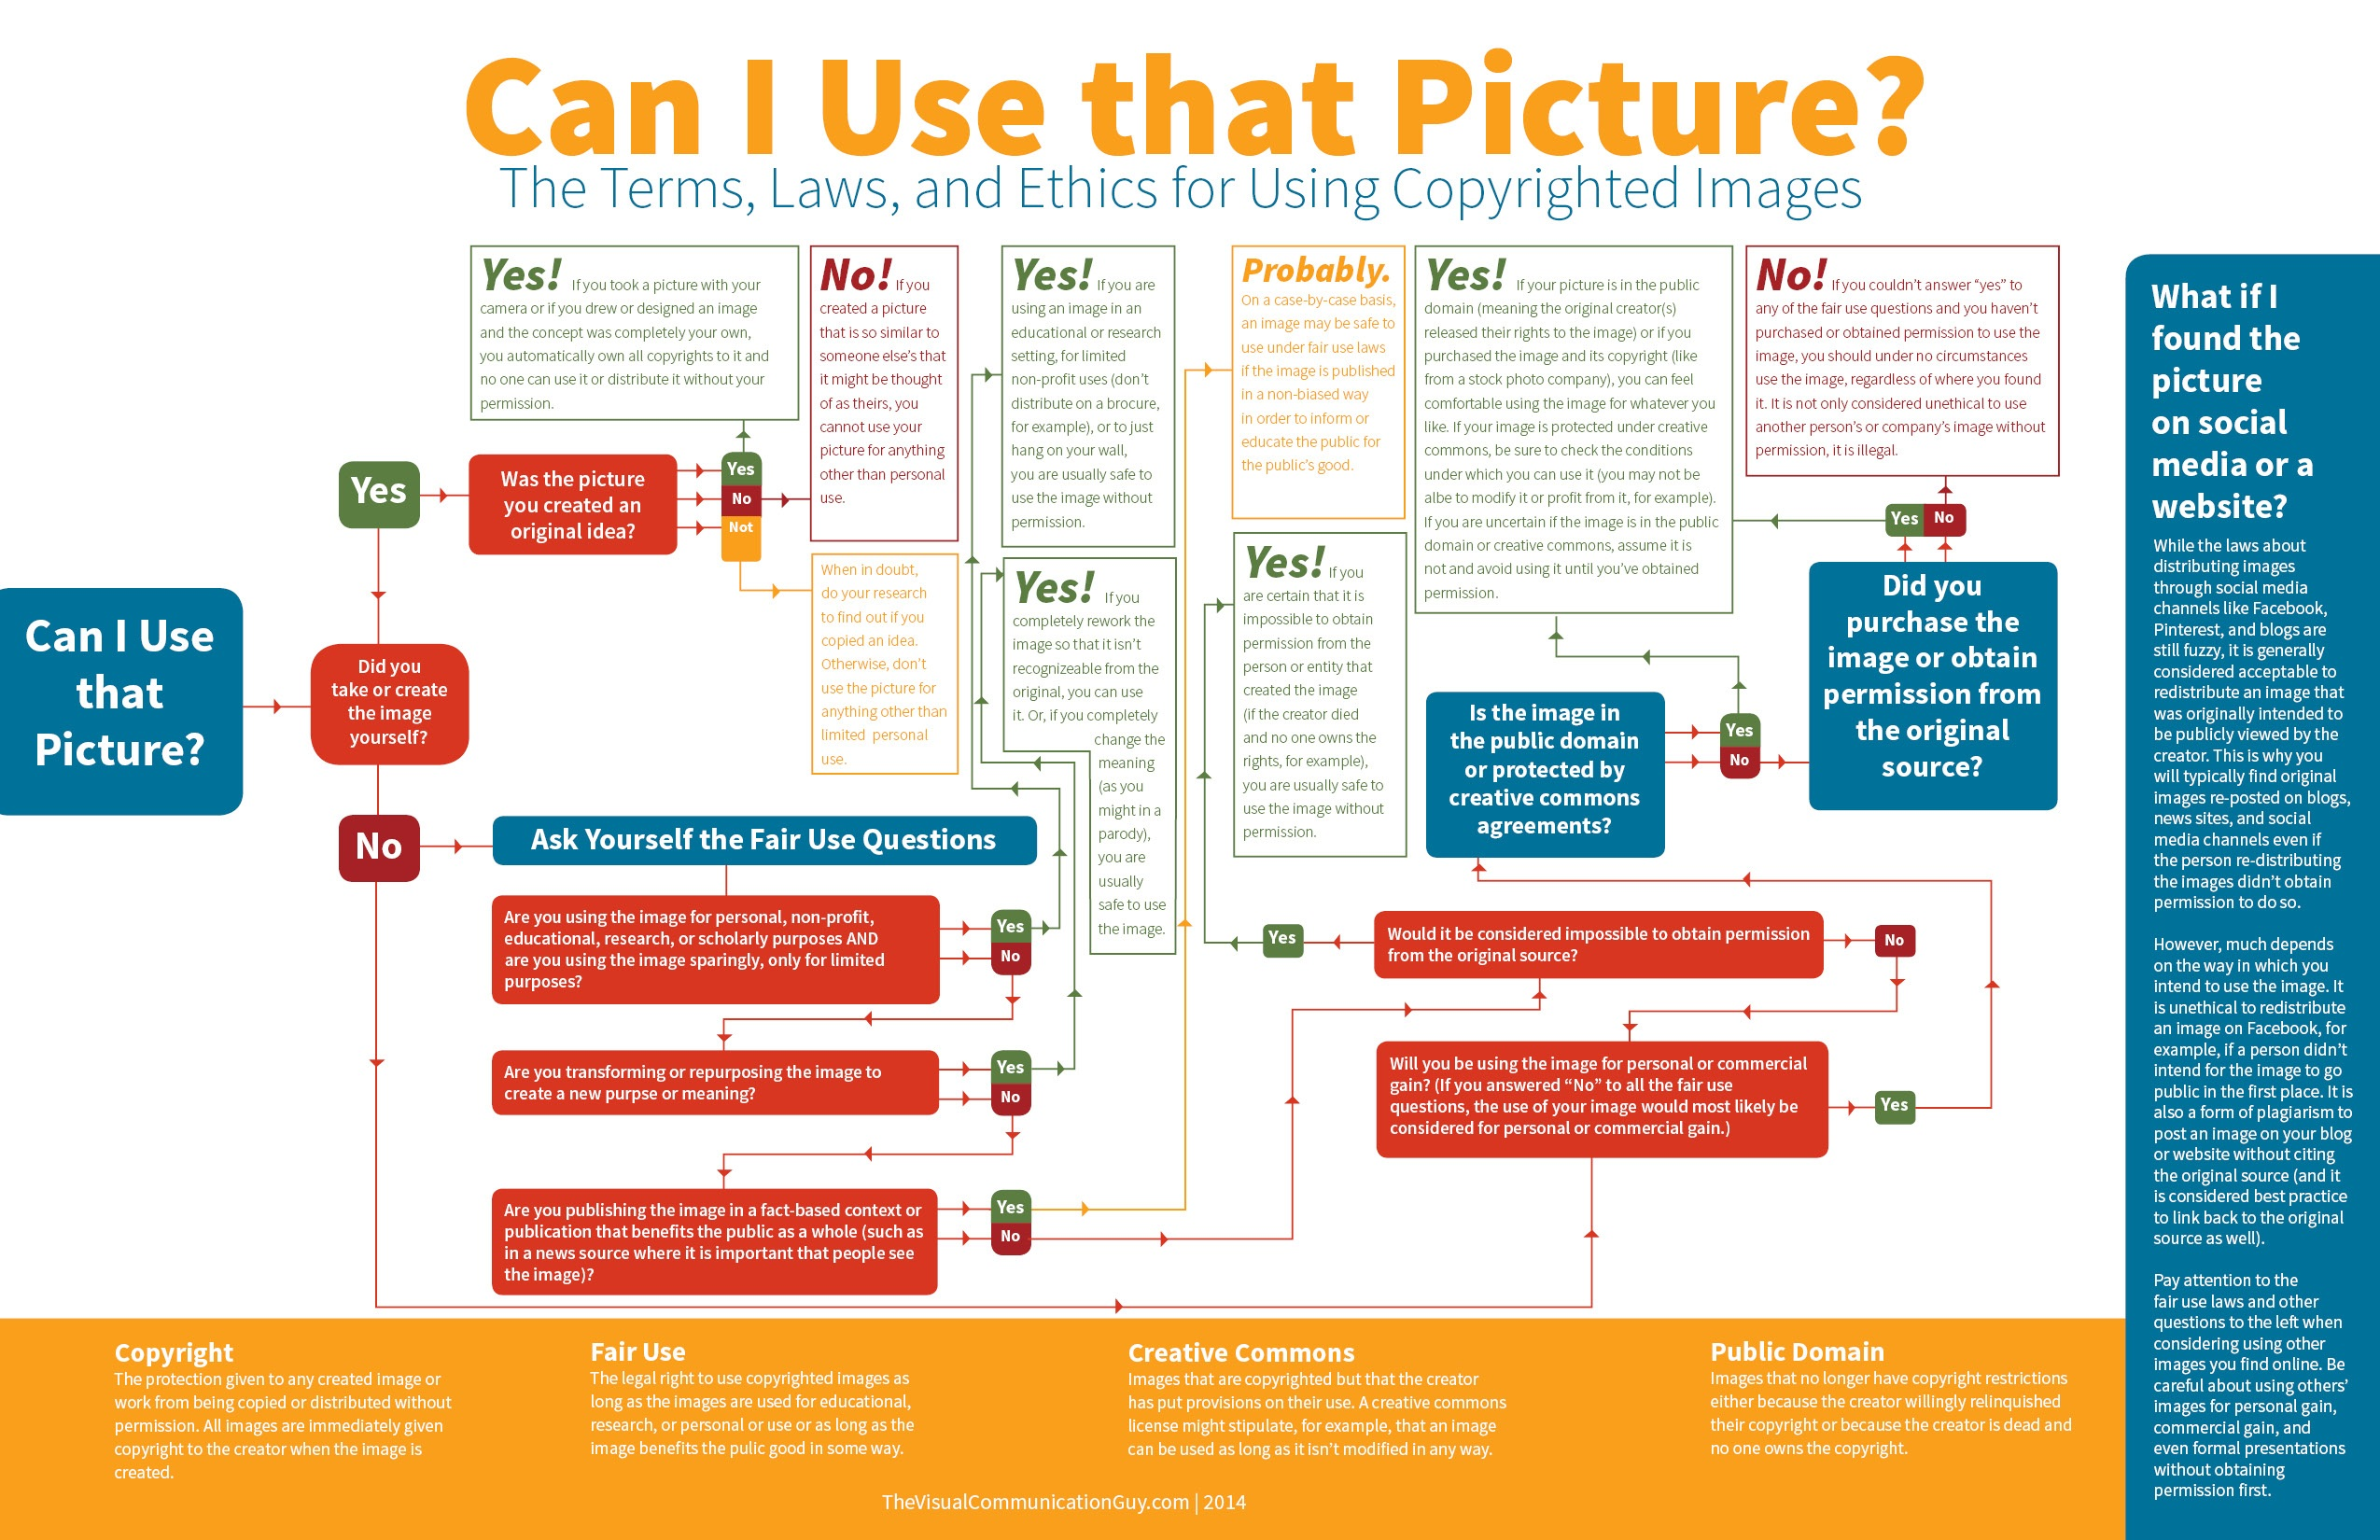 Copyright and Picture Usage